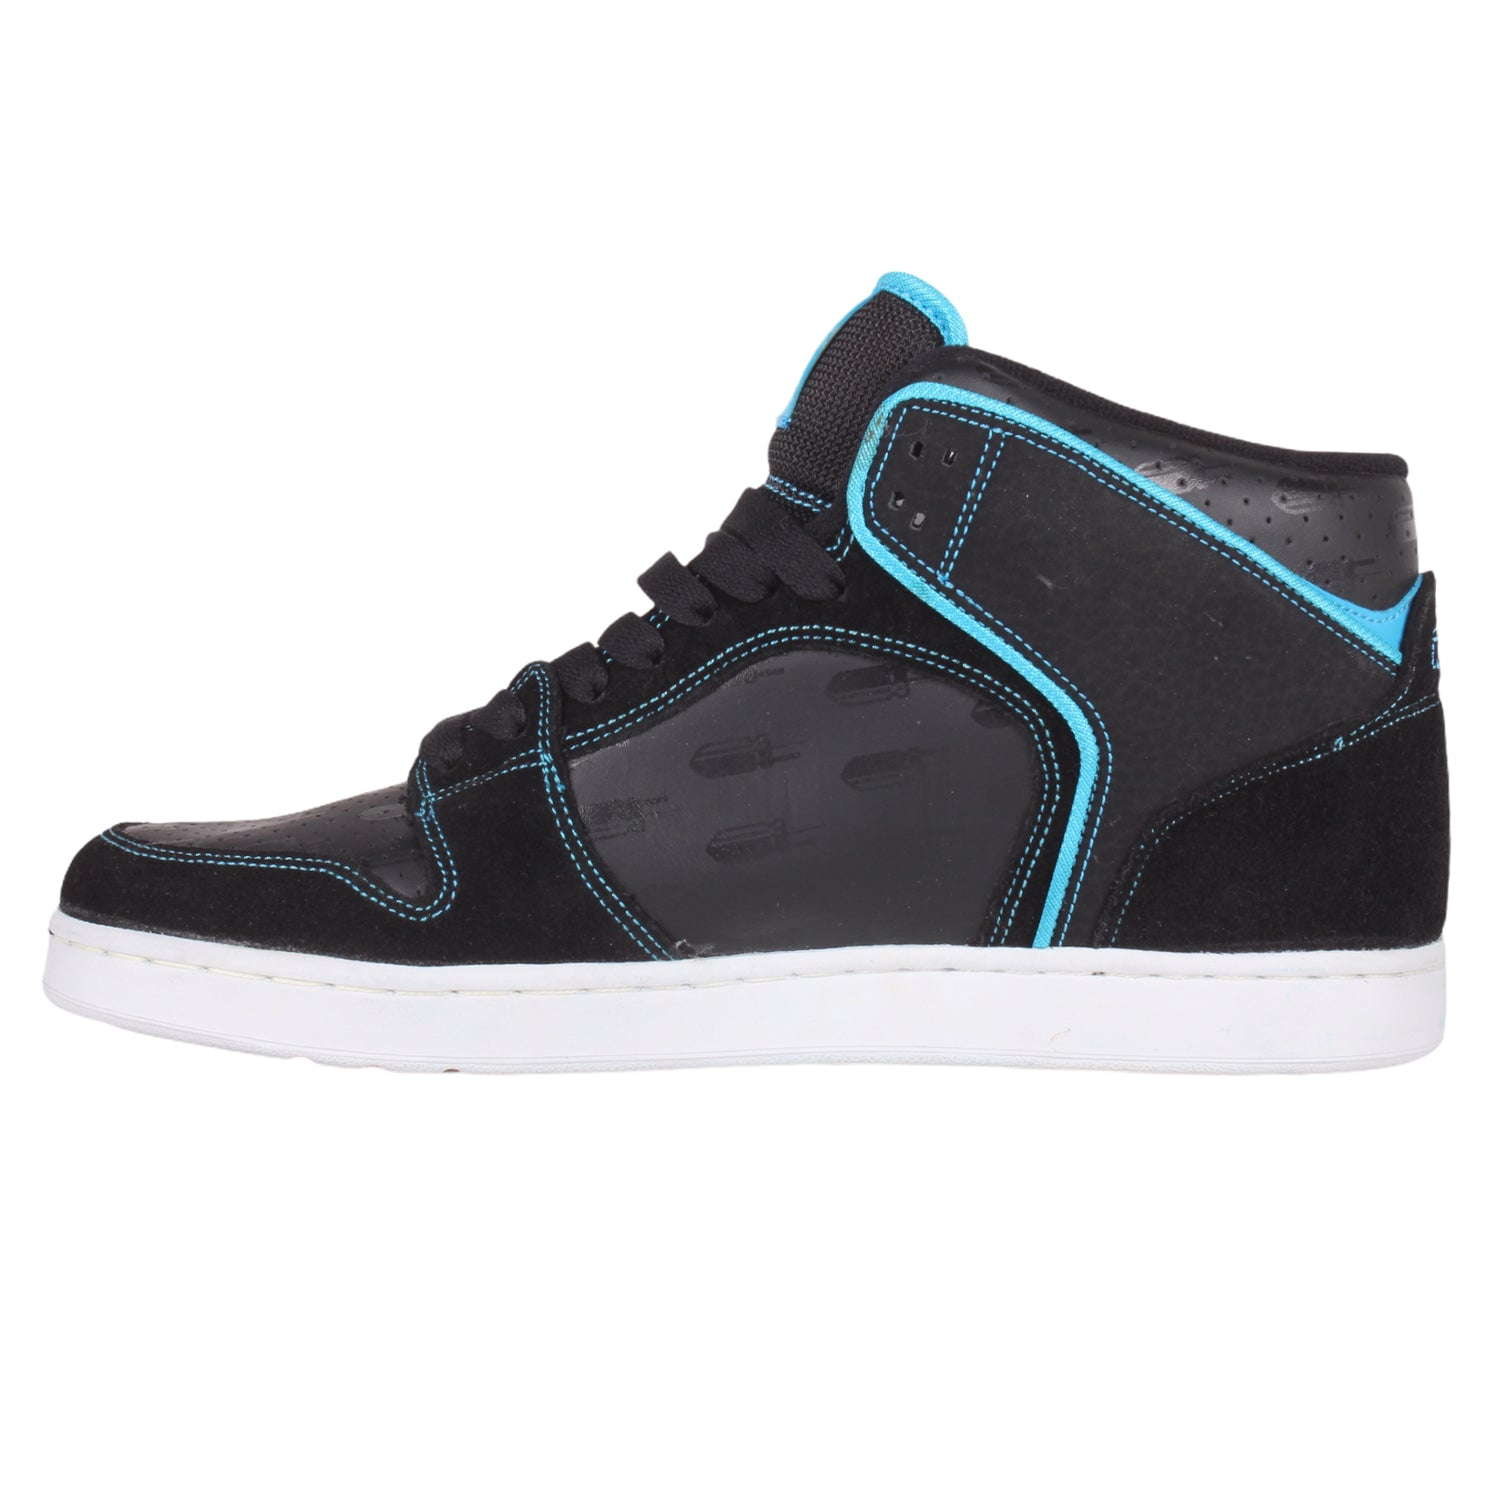 Overripe Lakai Telford French Connection JB Gillet Black/Blue Suede (2007)